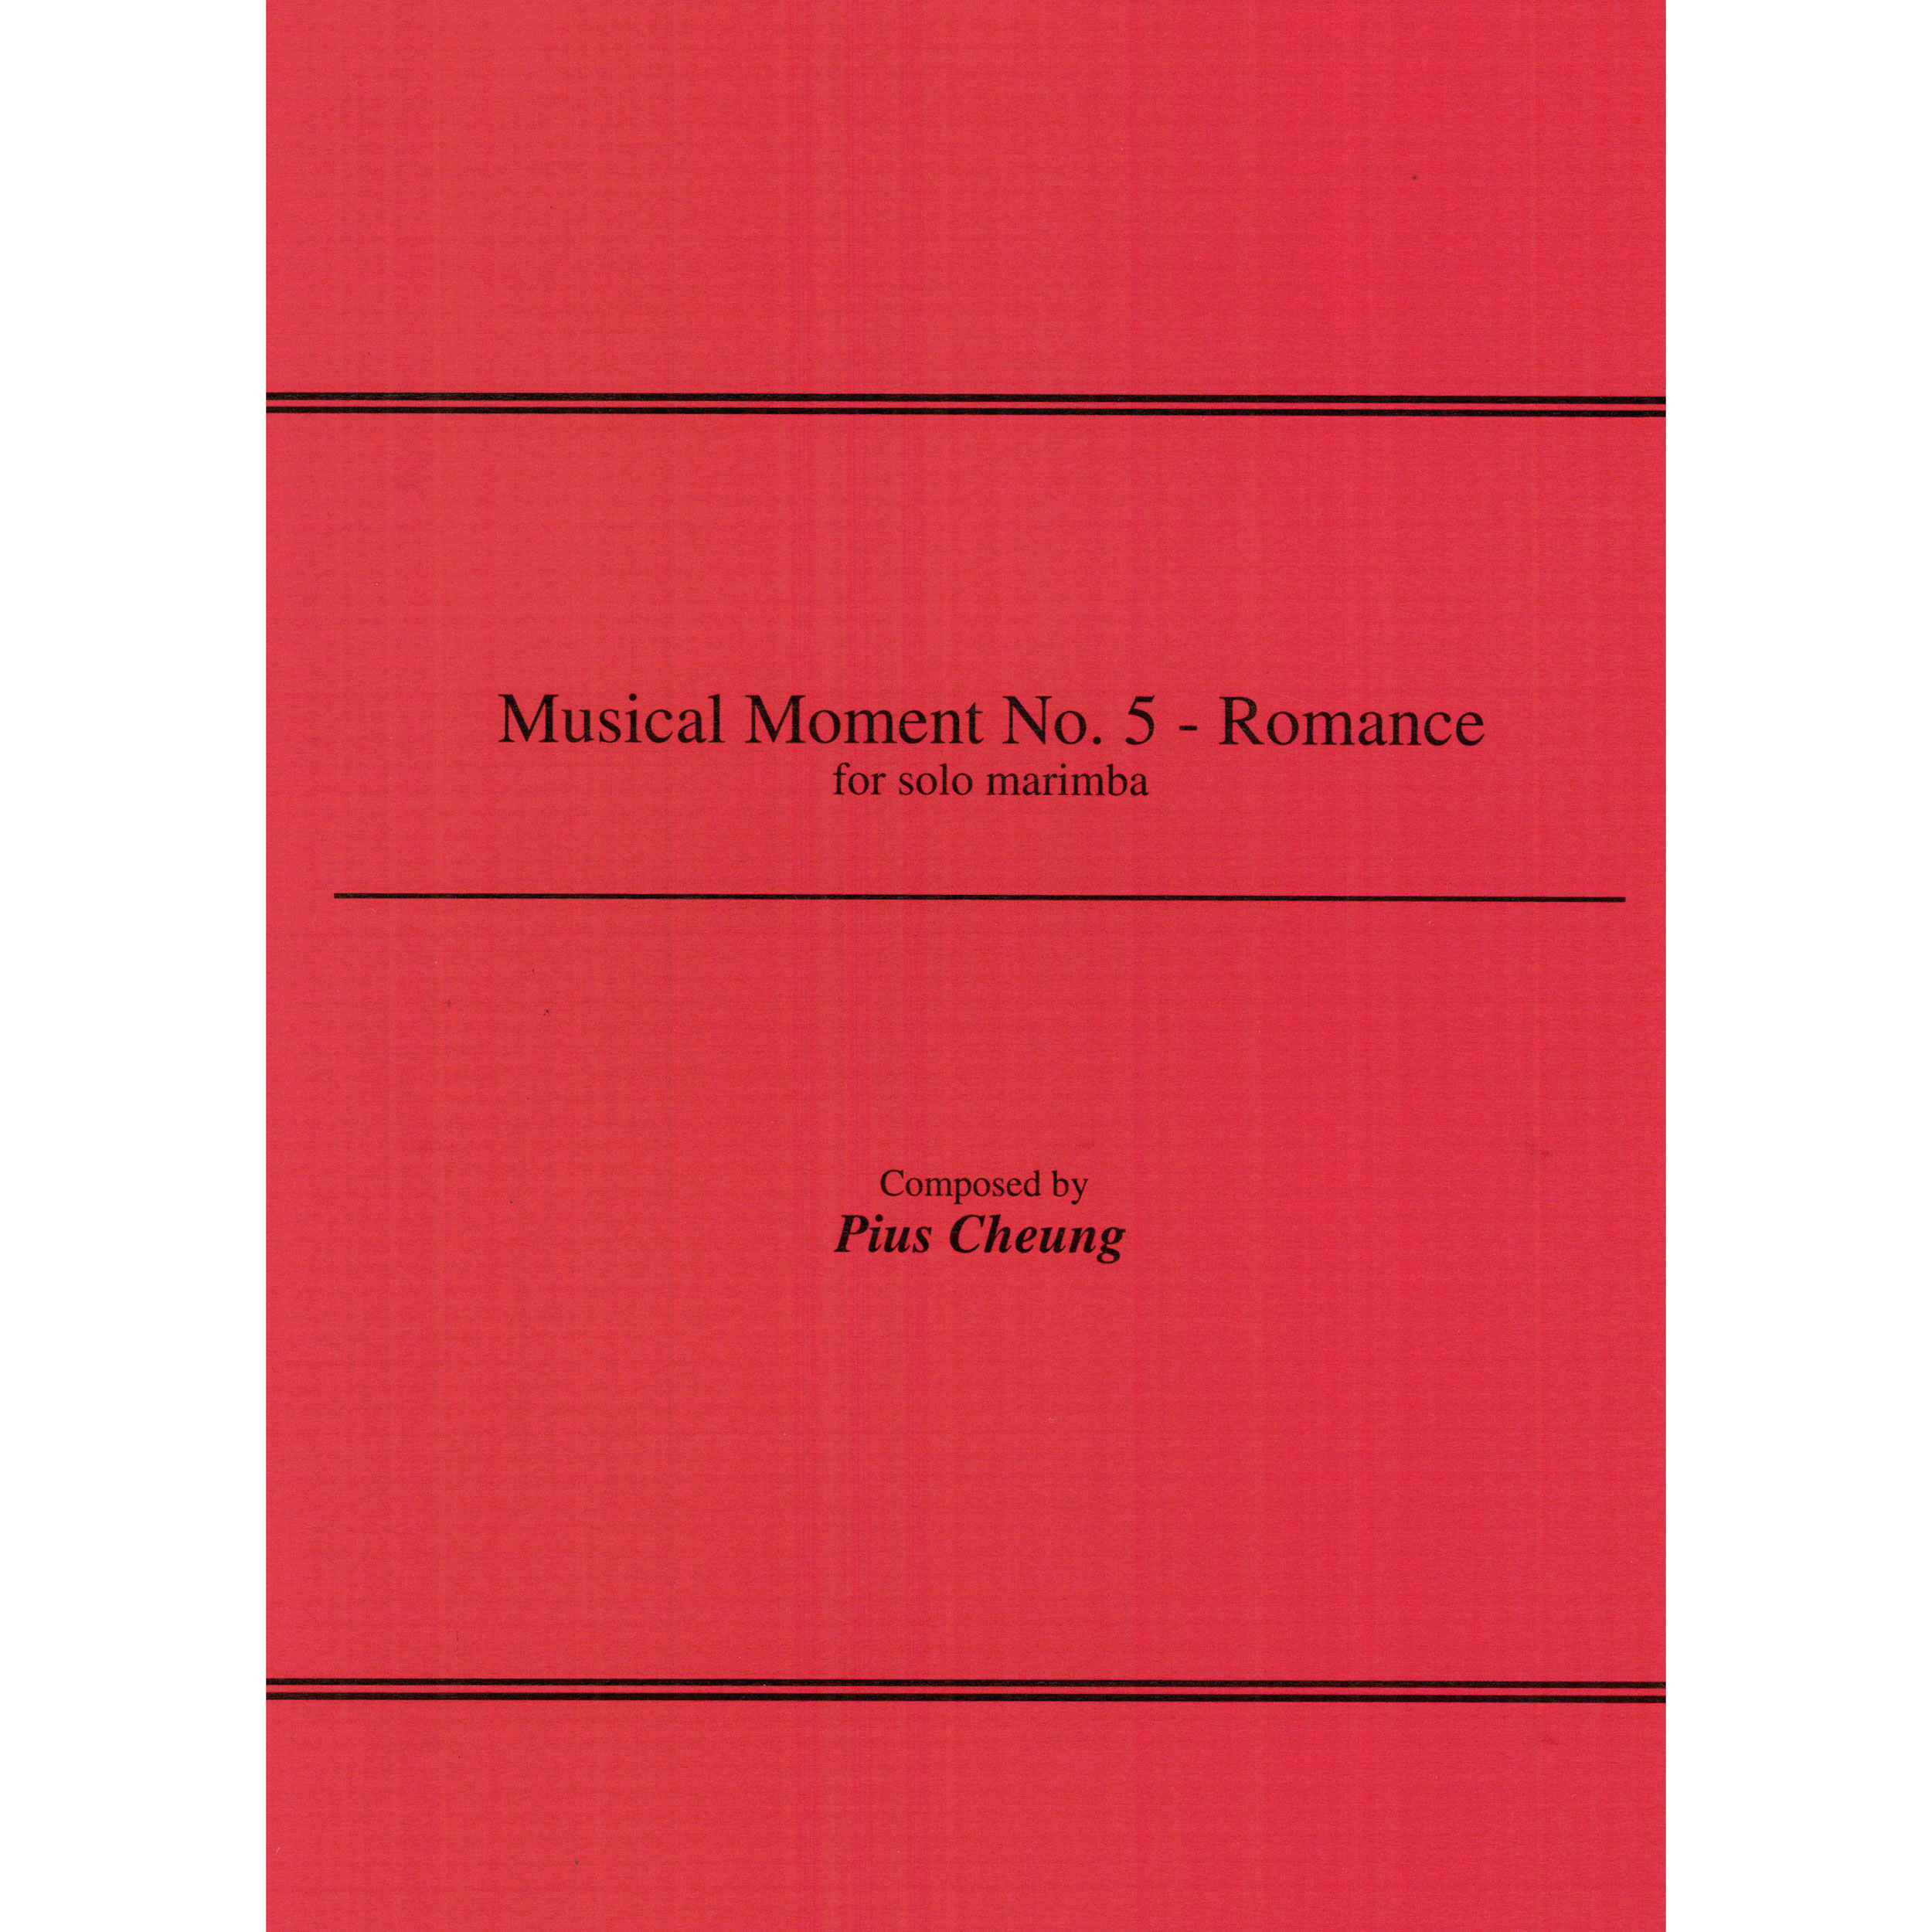 Musical Moment No. 5 - Romance by Pius Cheung